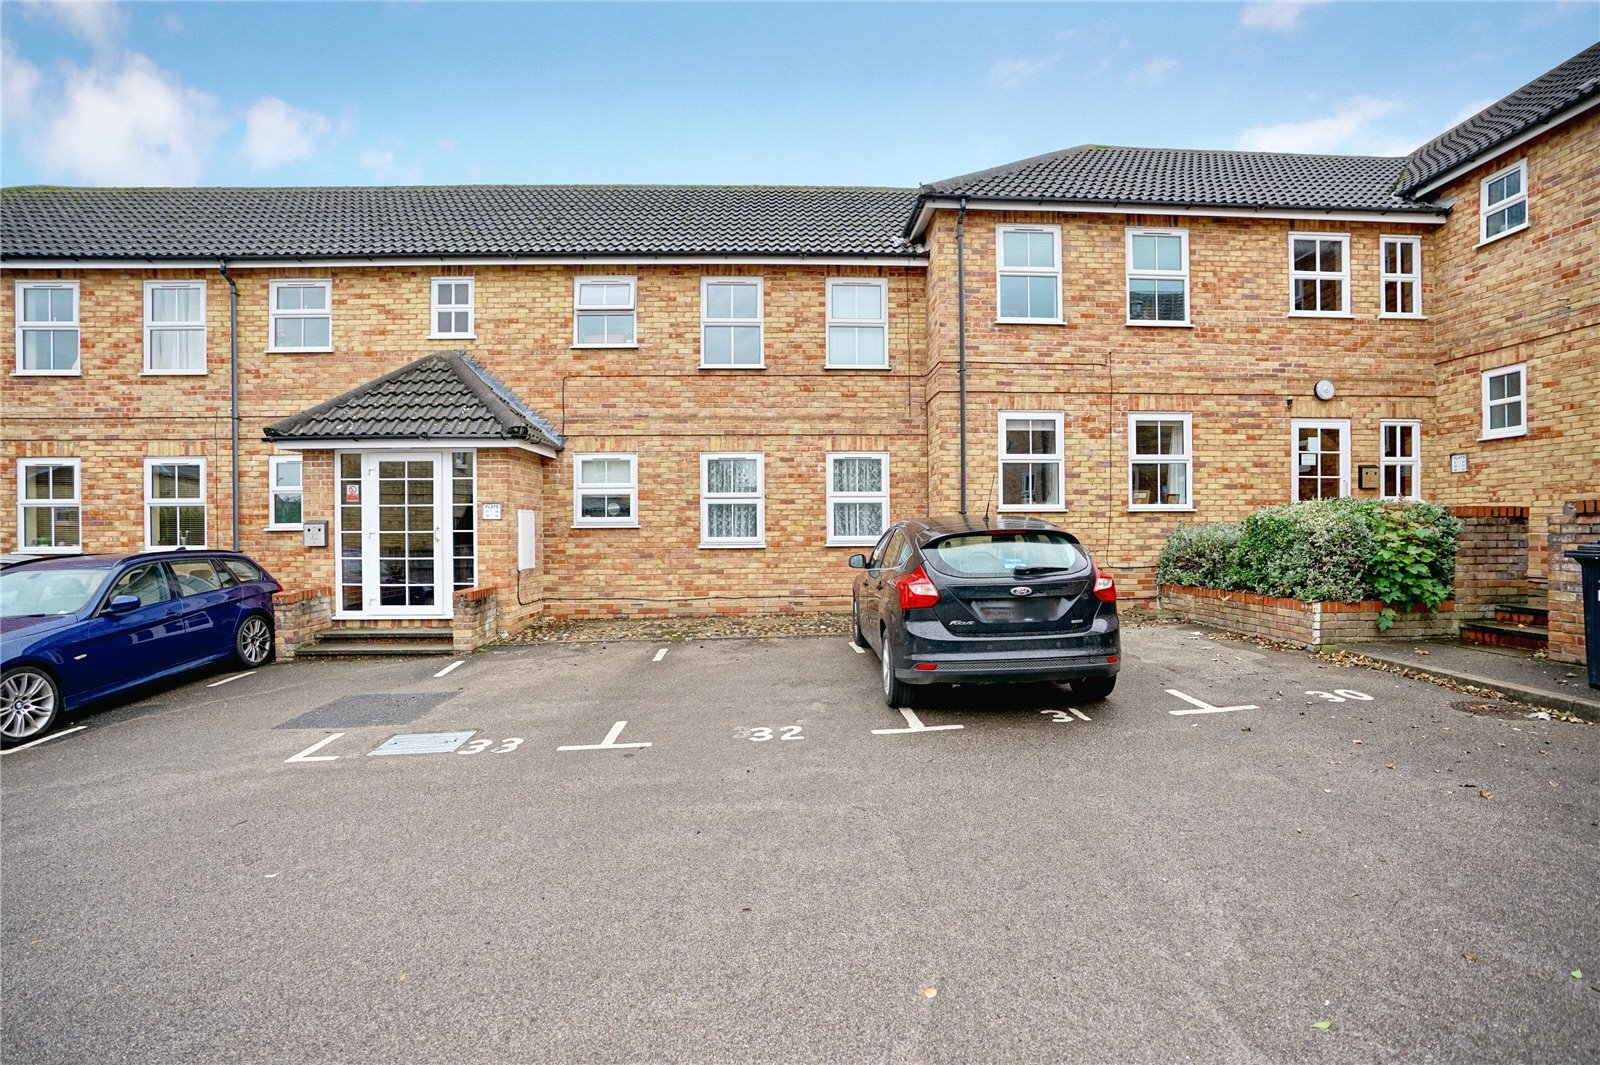 1 bed apartment for sale in Eaton Ford, PE19 7AH - Property Image 1